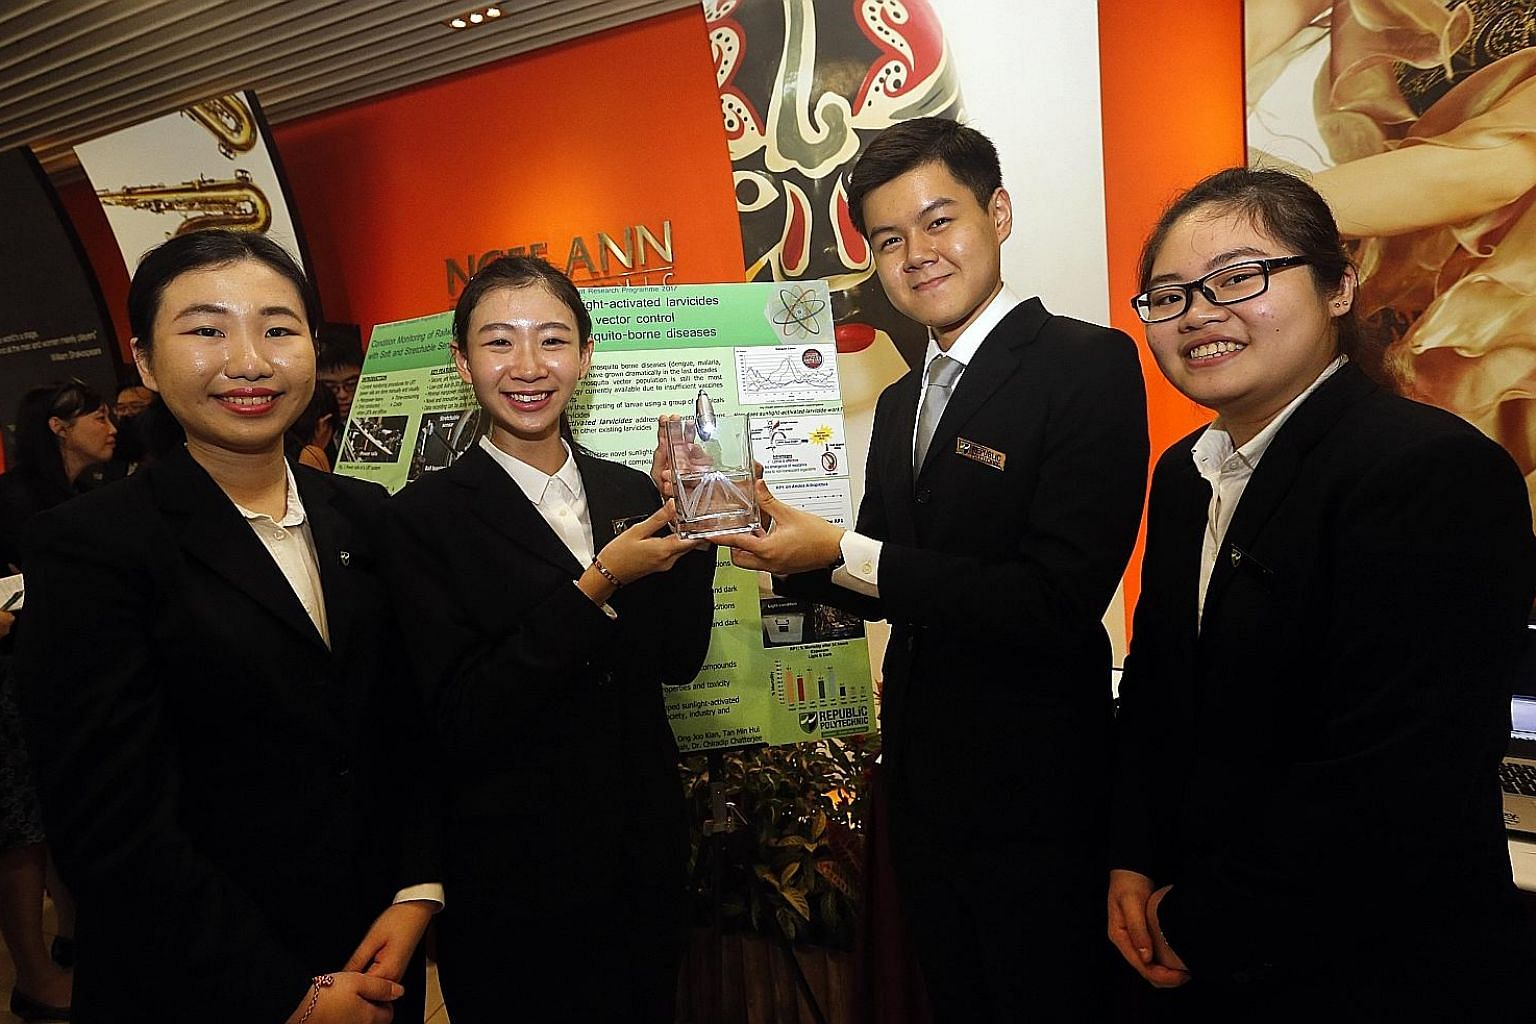 The project of Republic Polytechnic students (from left) Fennatika Salim, Lhu Ying Xuan, Ong Joo Kian and Tan Min Hui, all aged 21, was among 10 recognised with a Polytechnic Student Research Programme Award. Their sunlight-activated larvicide is 1,000 ti